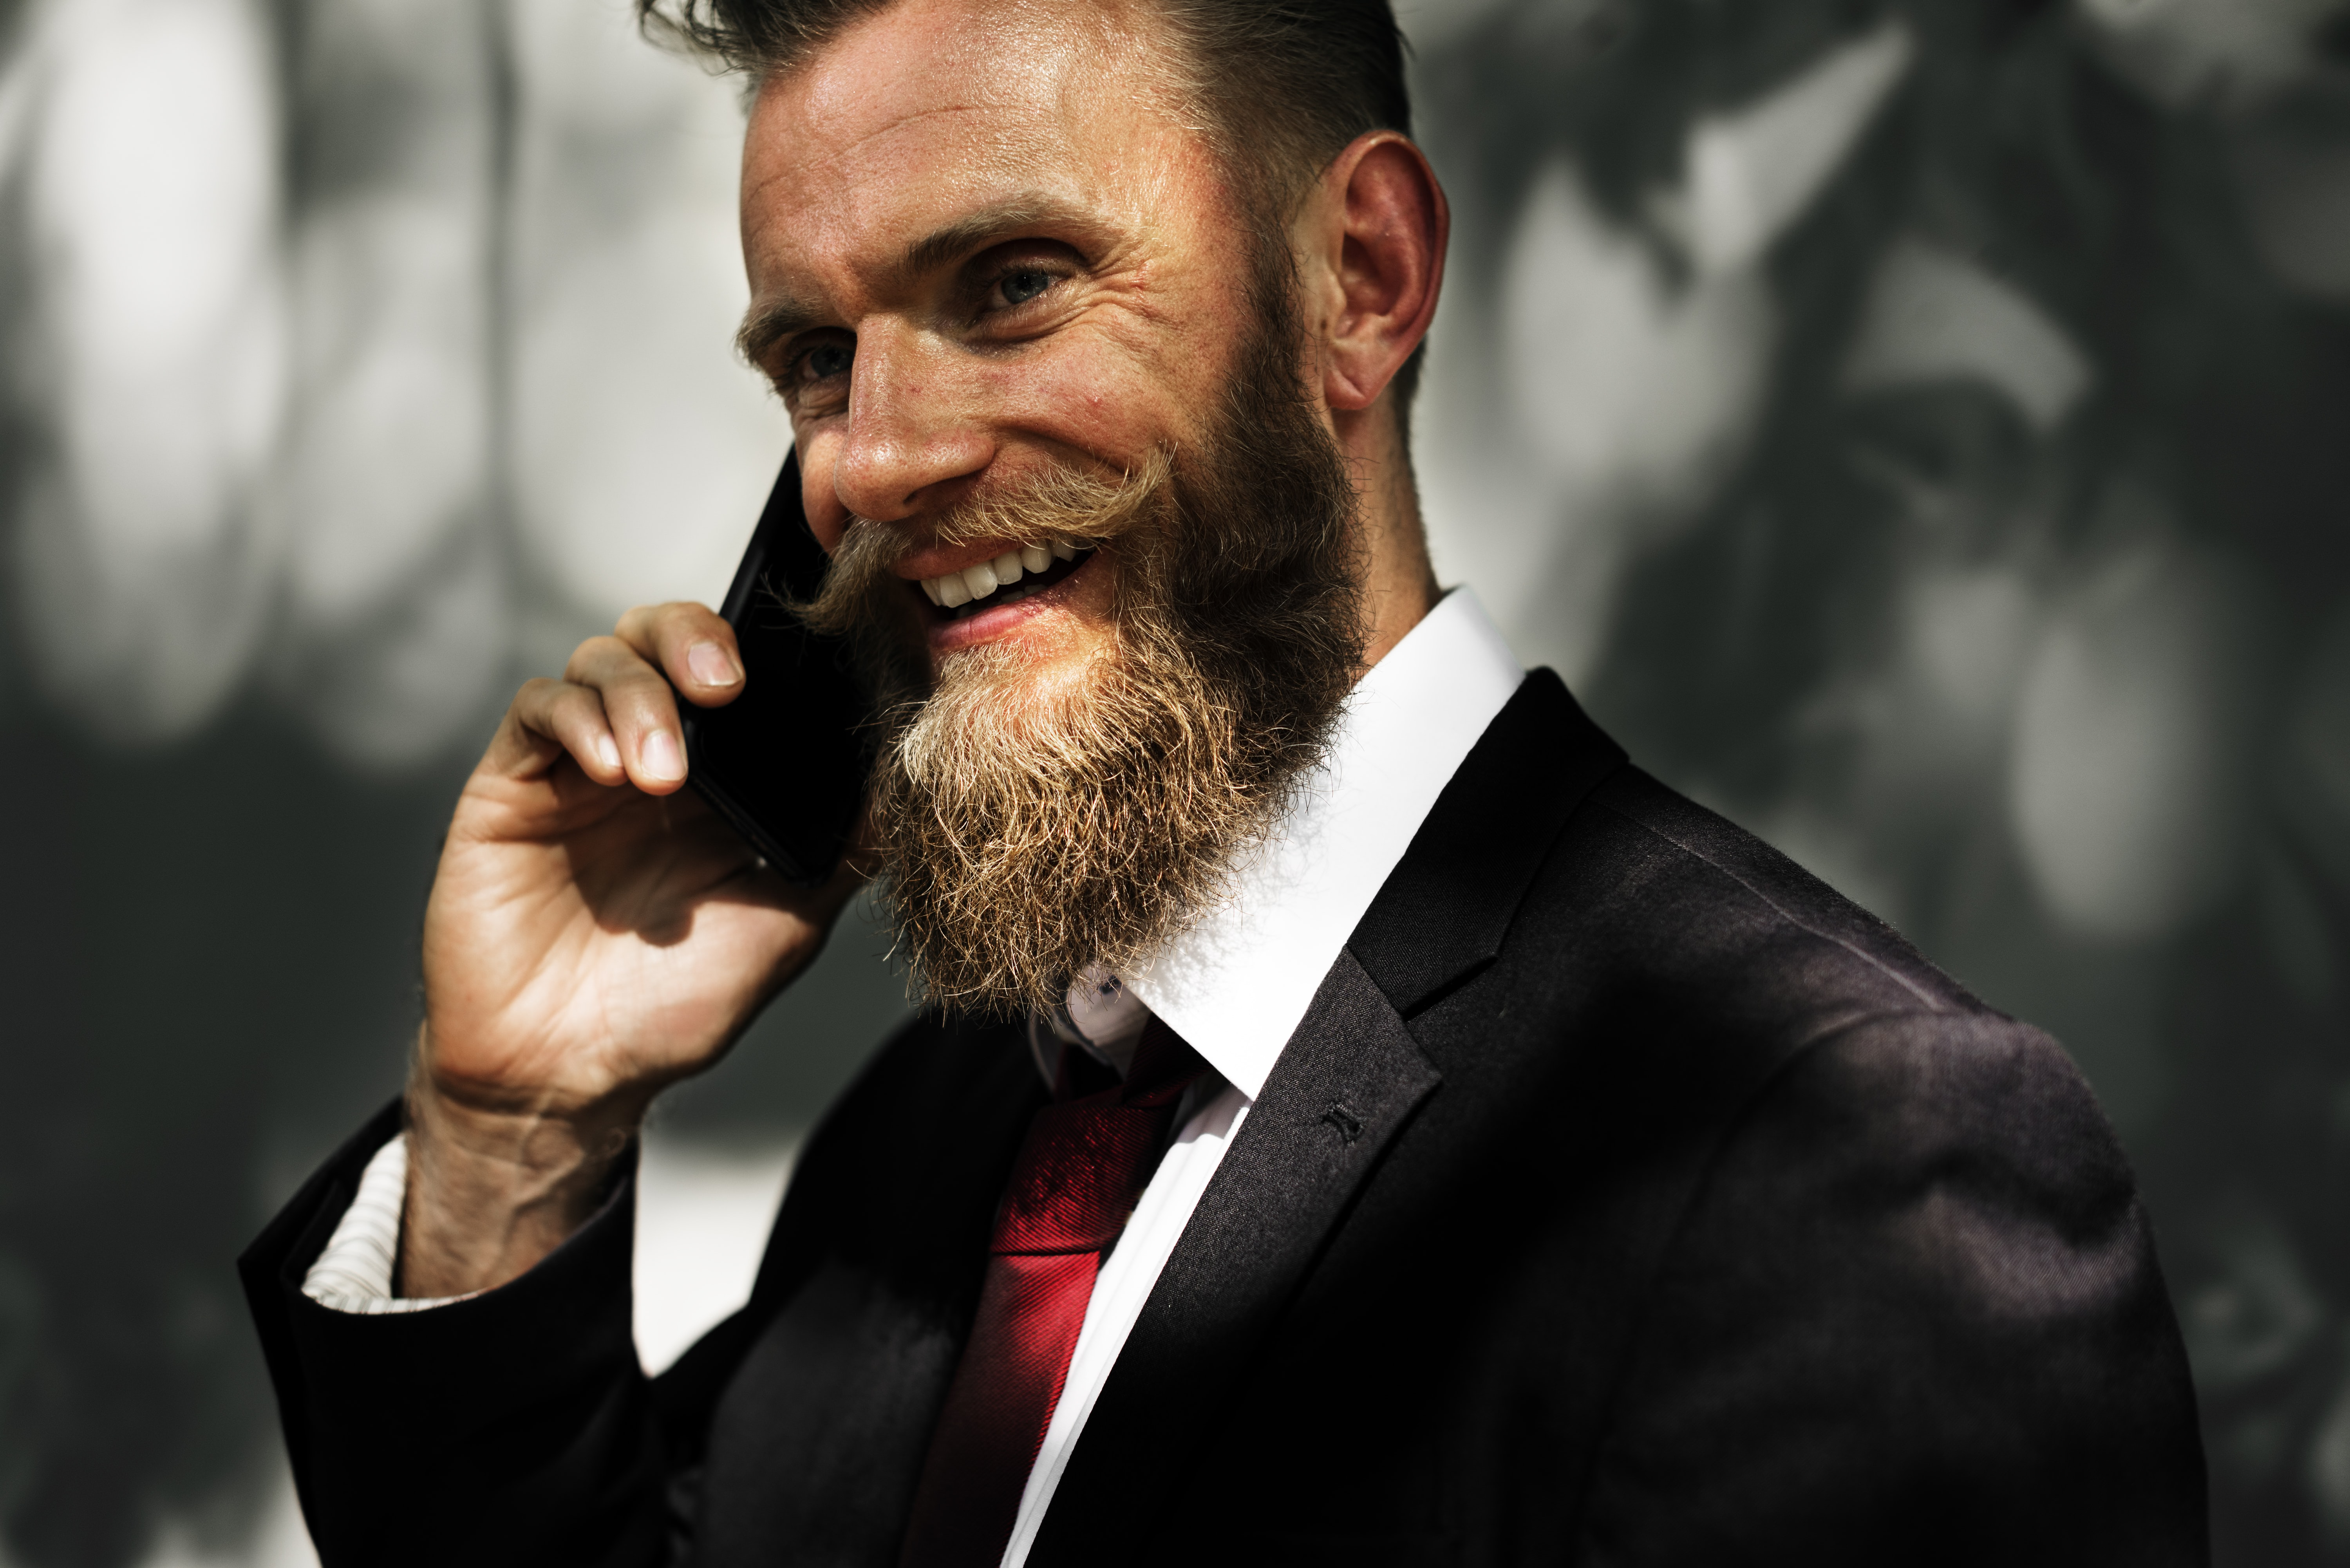 man holding phone and use it